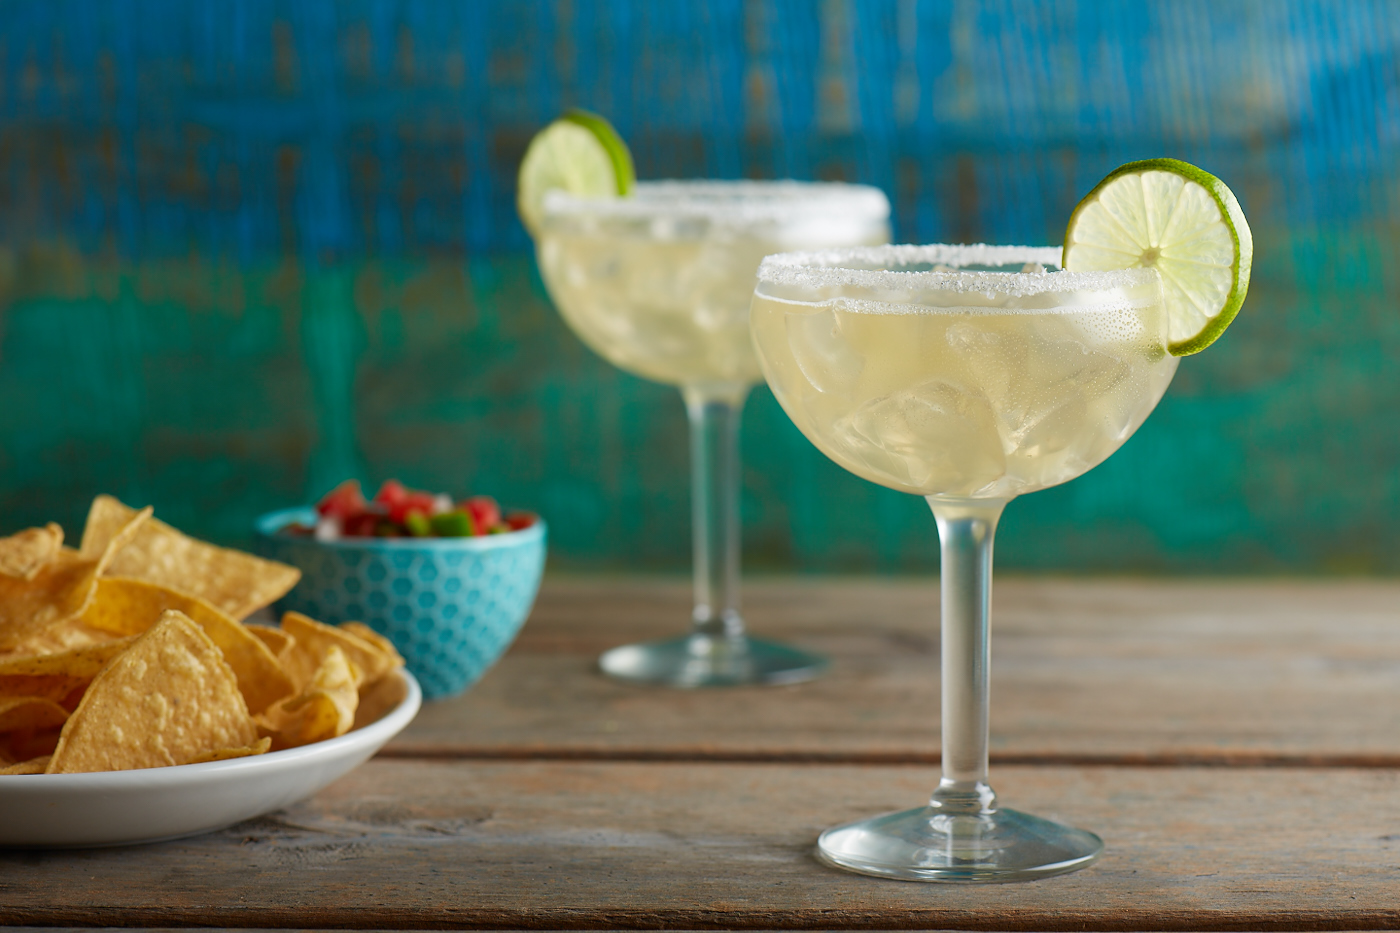 margaritas and chips on a wooden table